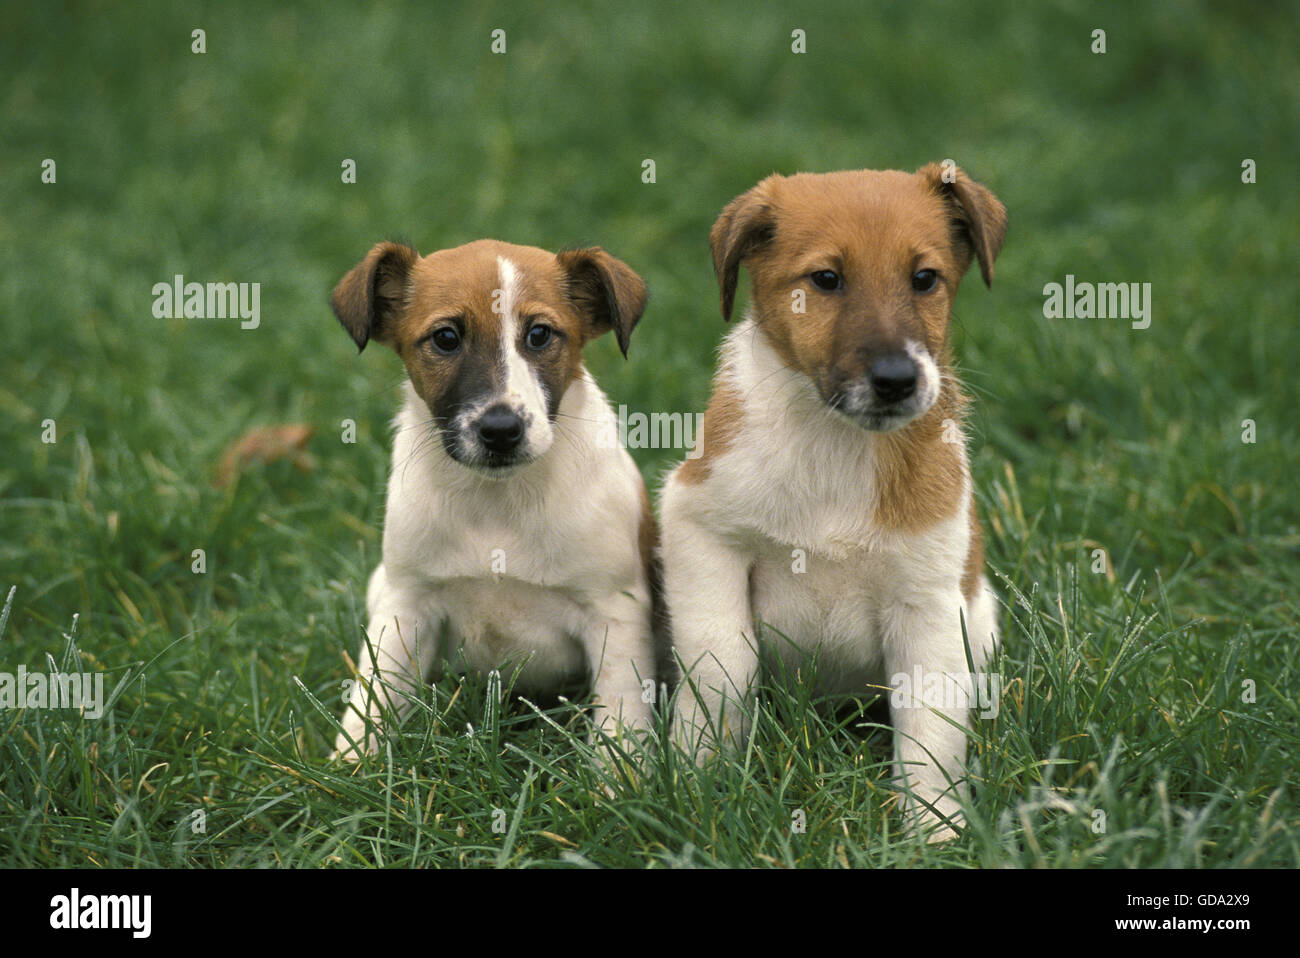 Smooth Fow Terrier Dog, Pup sitting on Grass - Stock Image